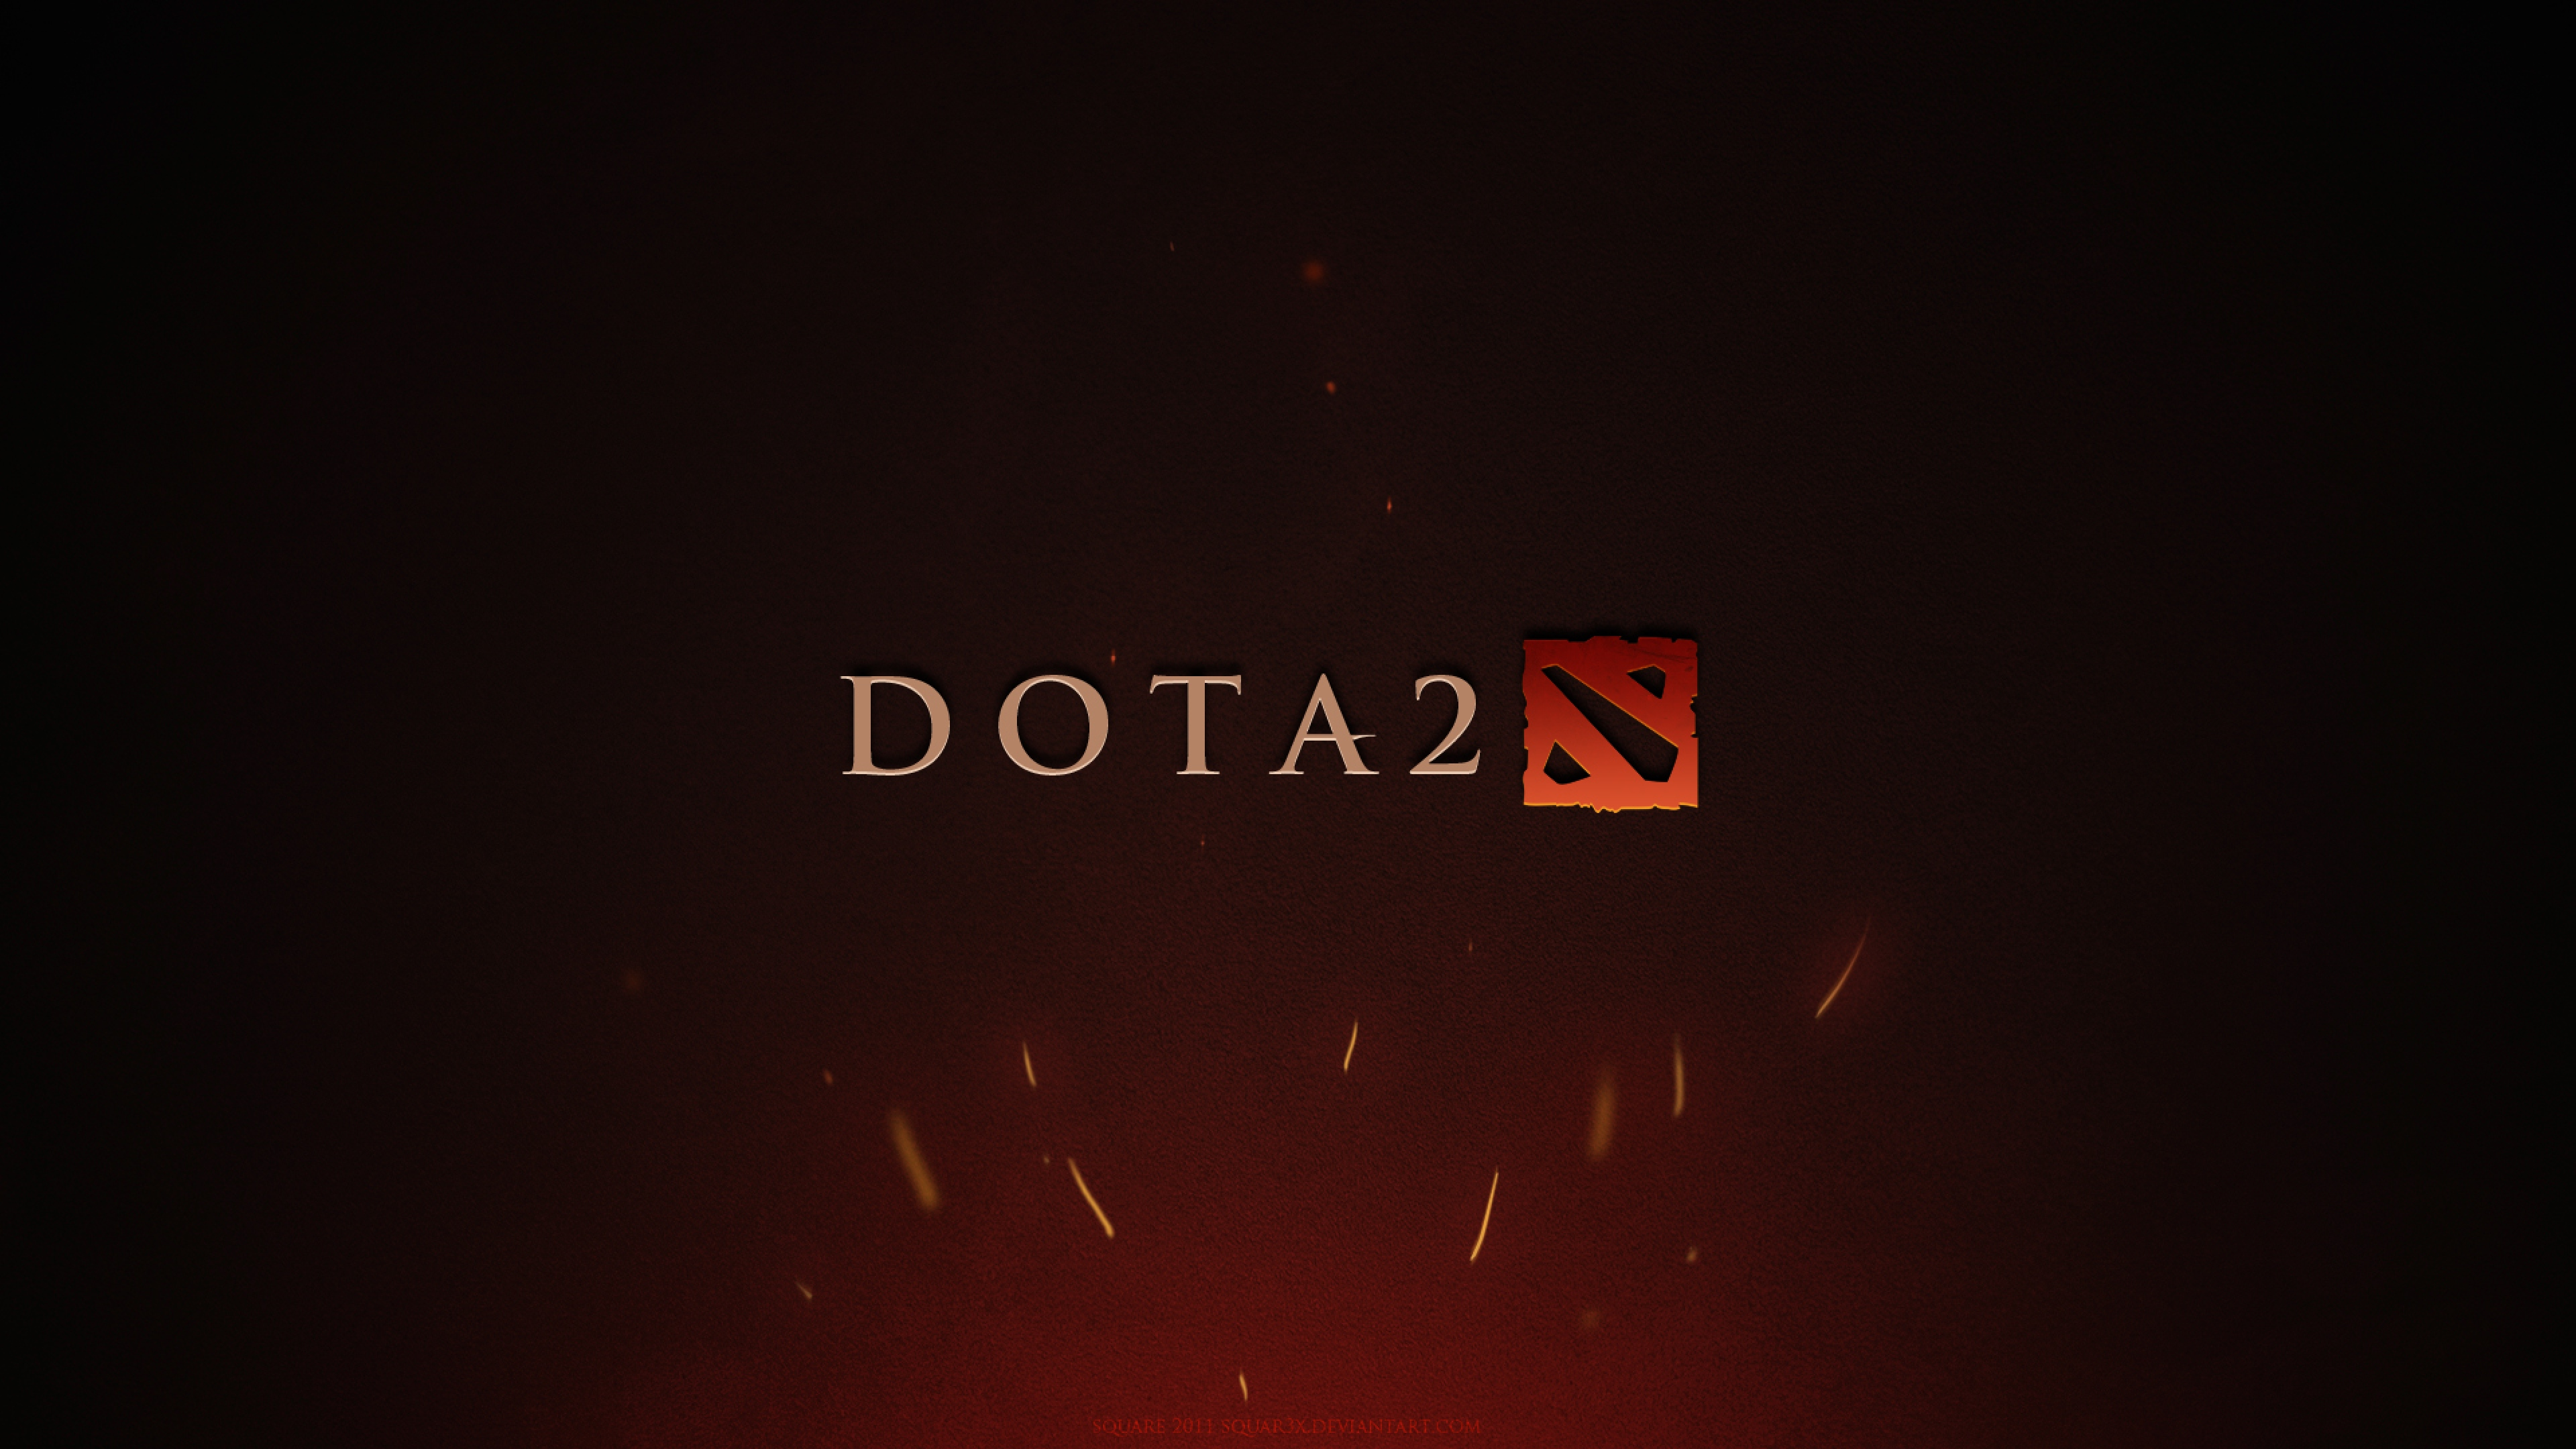 Ultra Hd 3d Wallpapers Dota 2 Game Logo Hd Games 4k Wallpapers Images